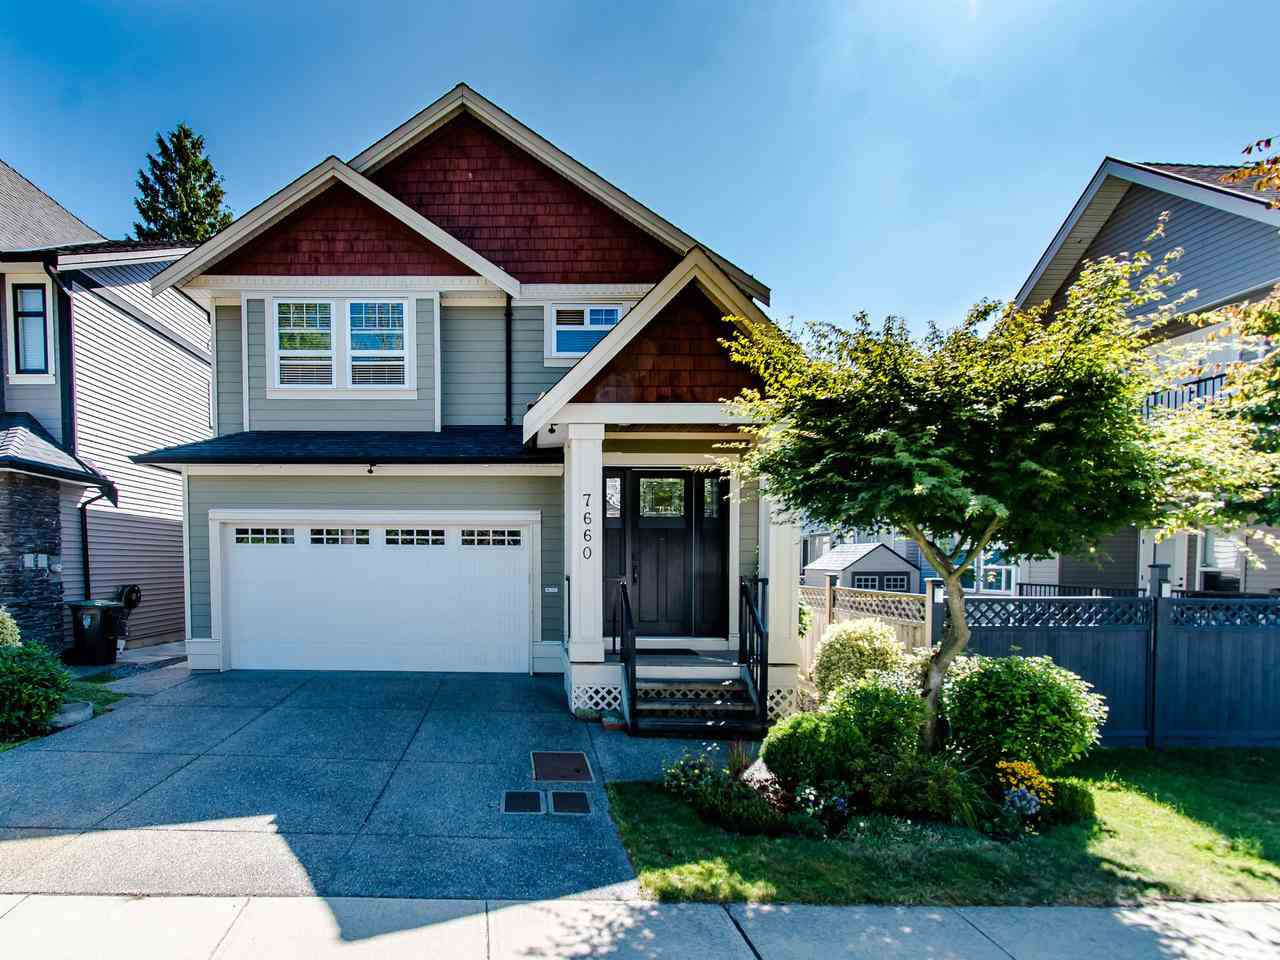 """Main Photo: 7660 210 Street in Langley: Willoughby Heights House for sale in """"WILLOUGHBY - YORKSON"""" : MLS®# R2483693"""